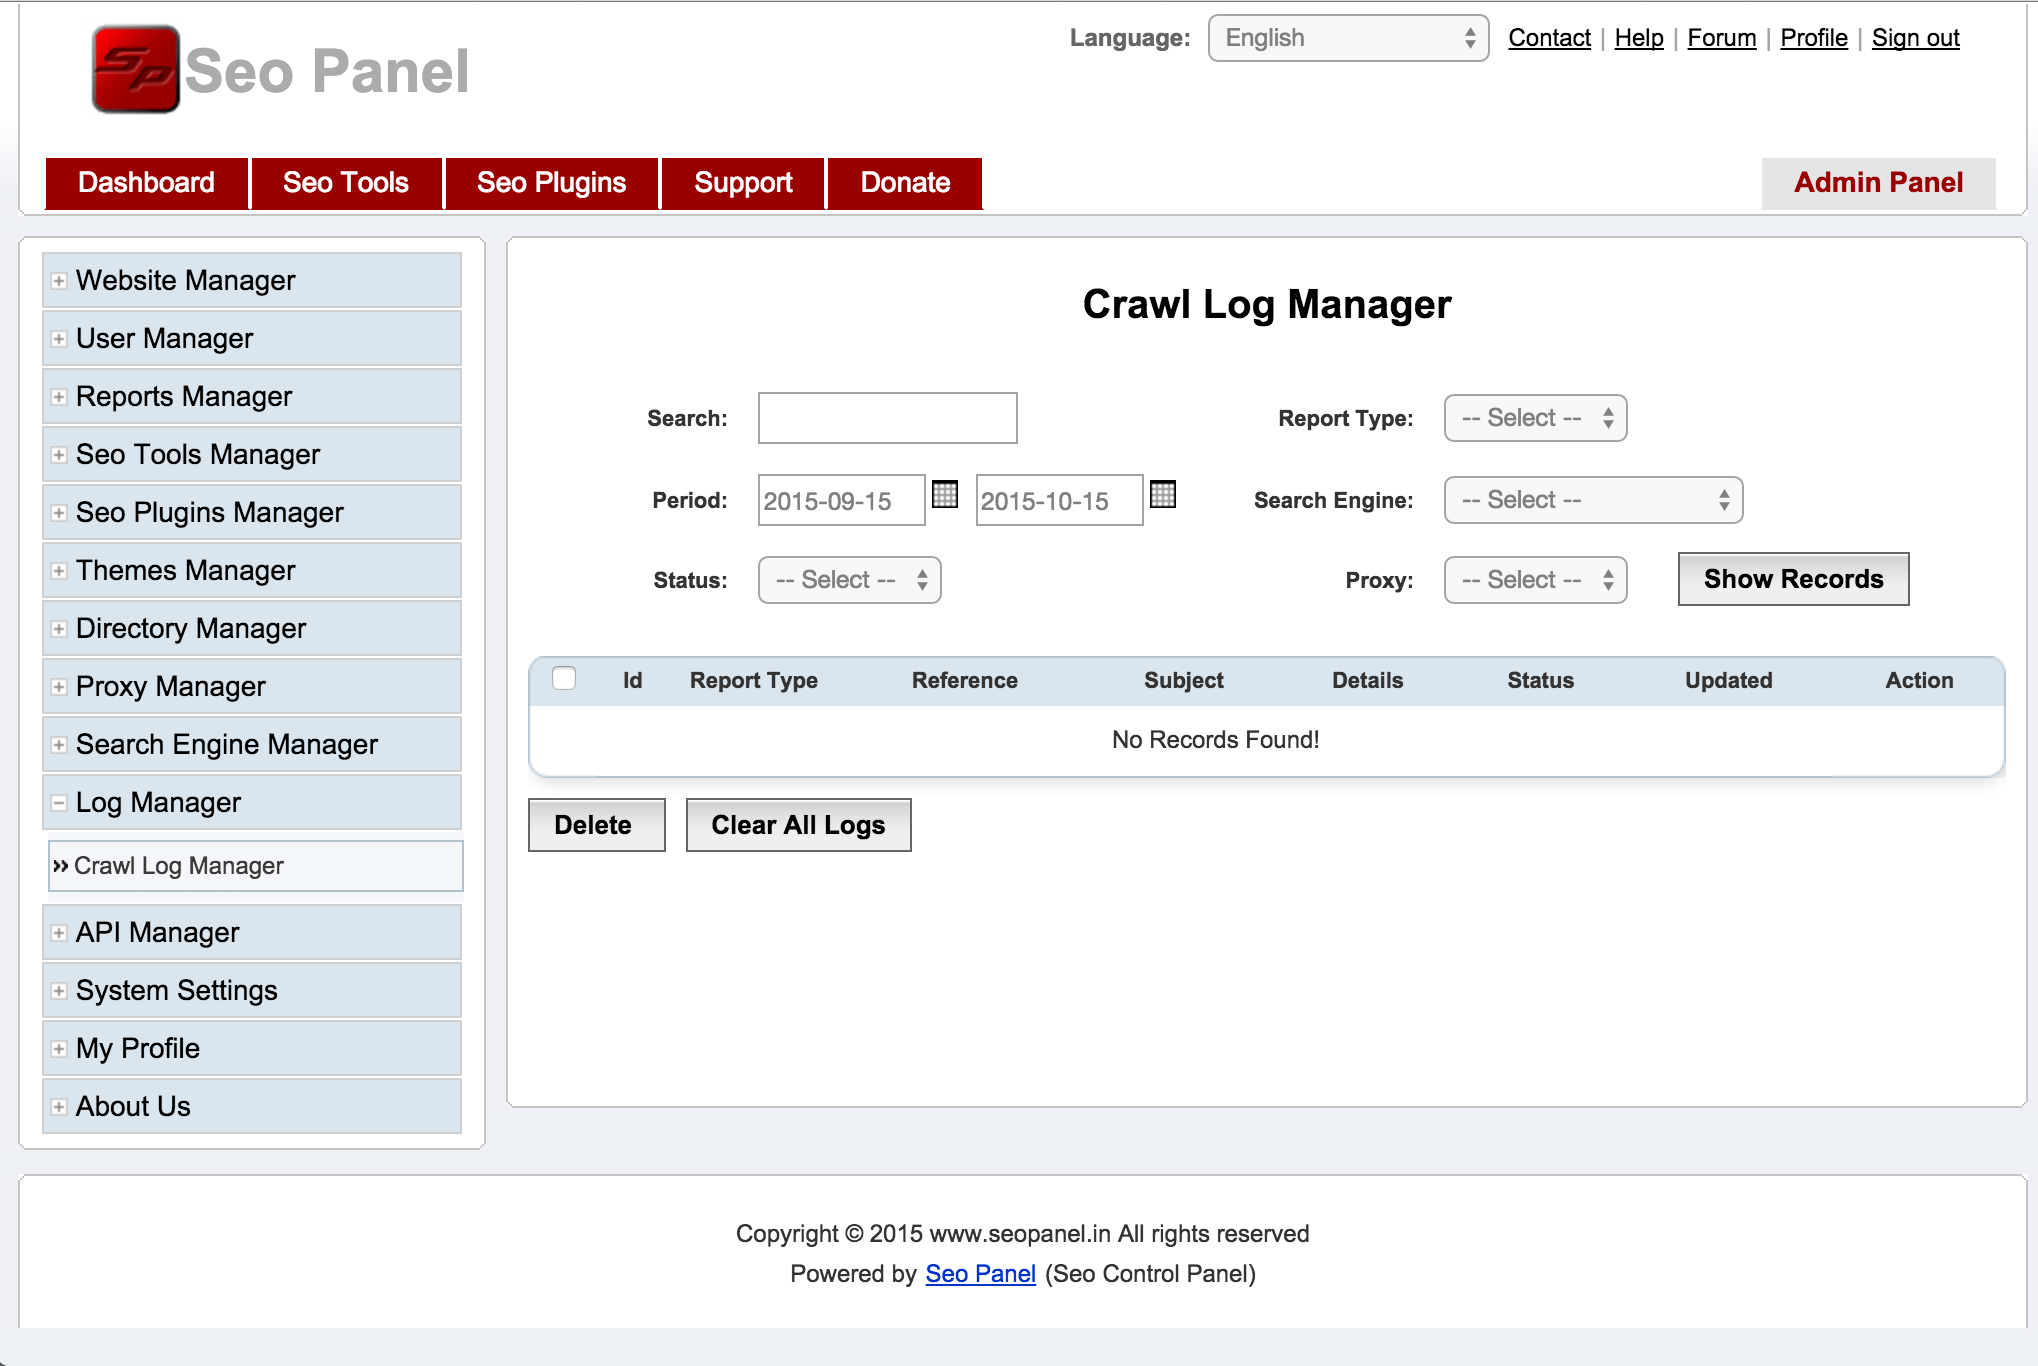 SEO Panel log viewer